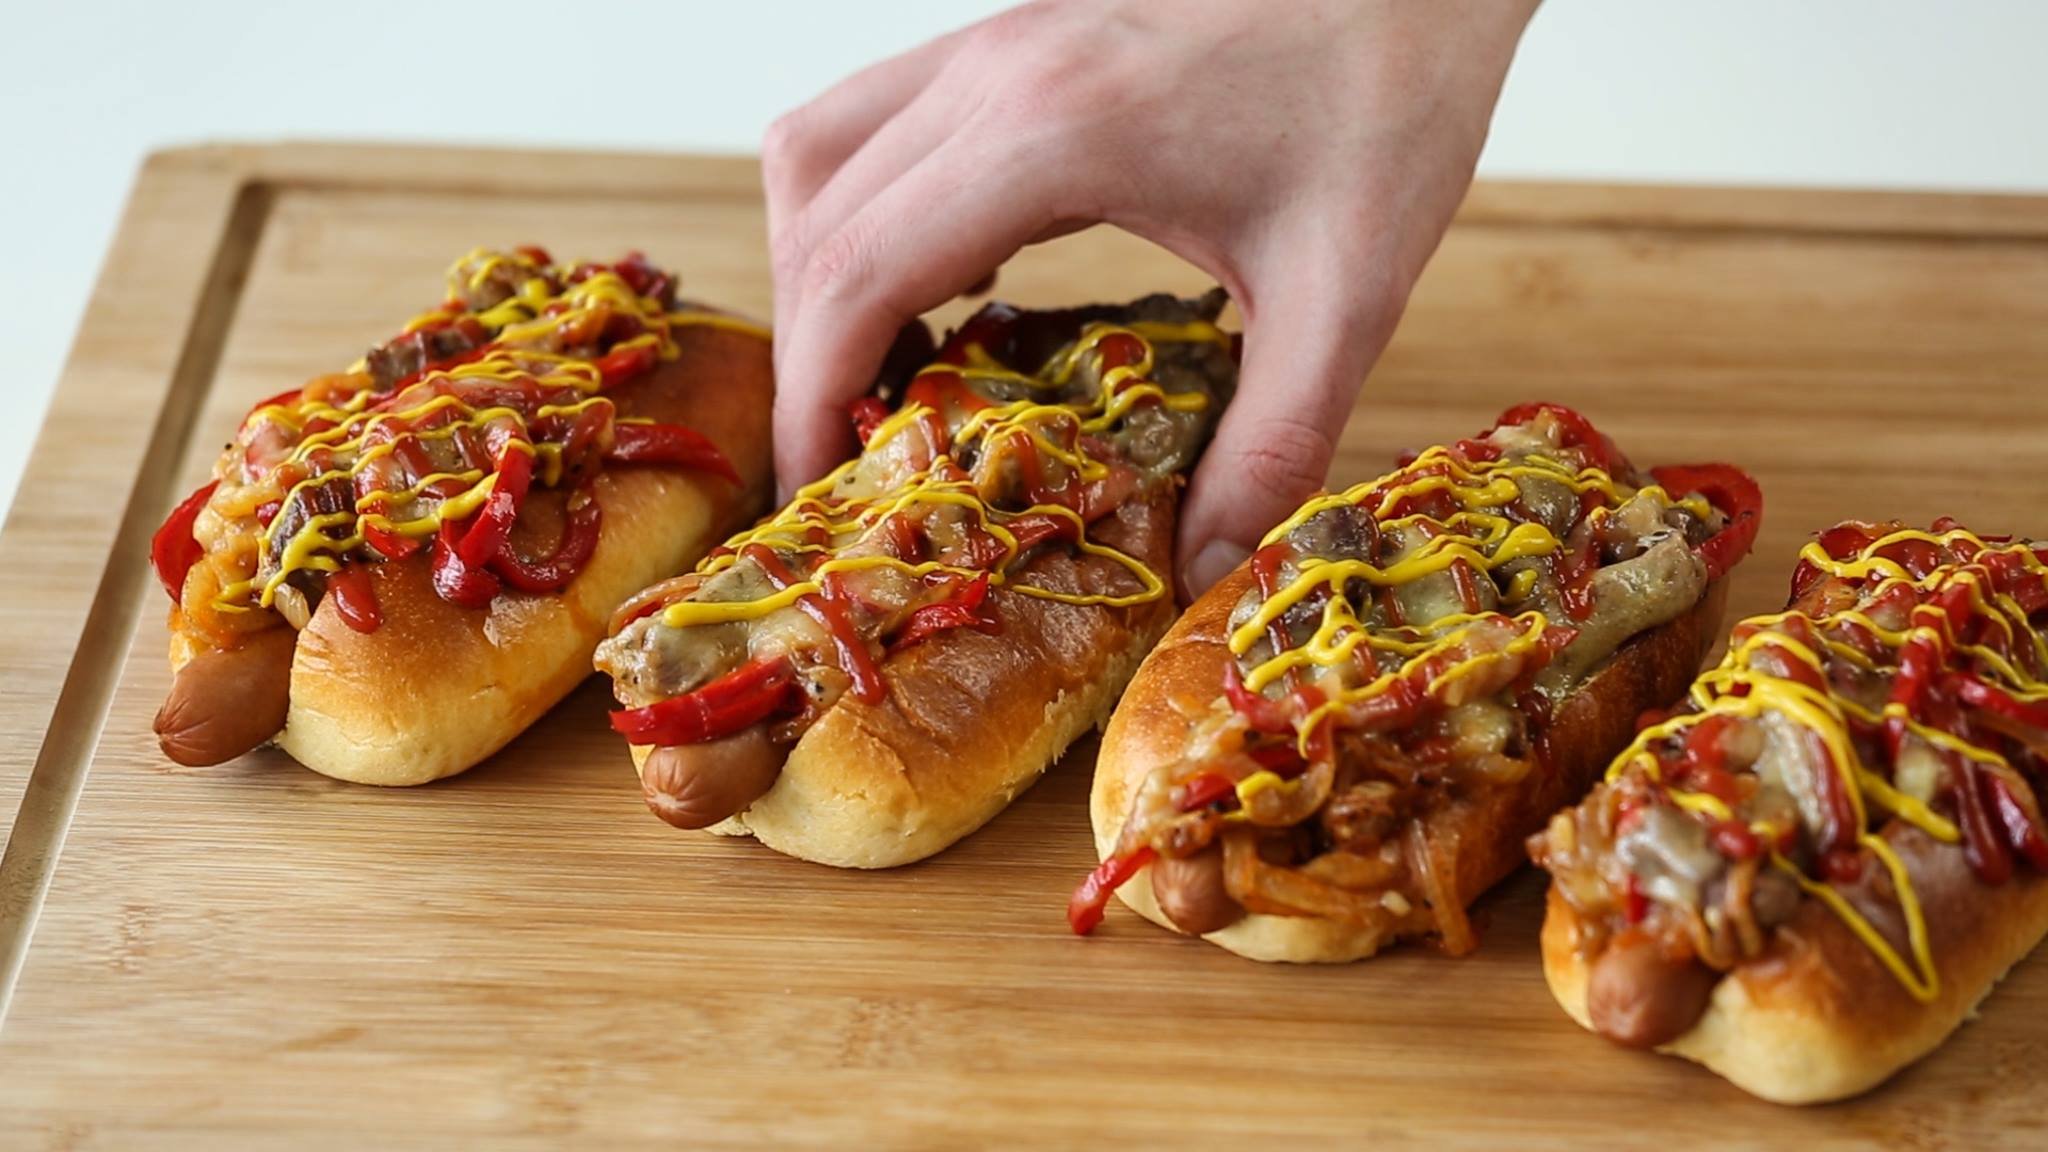 13287924 10154124017099361 679455497 o Heres How You Make Philly Cheese Steak Dogs